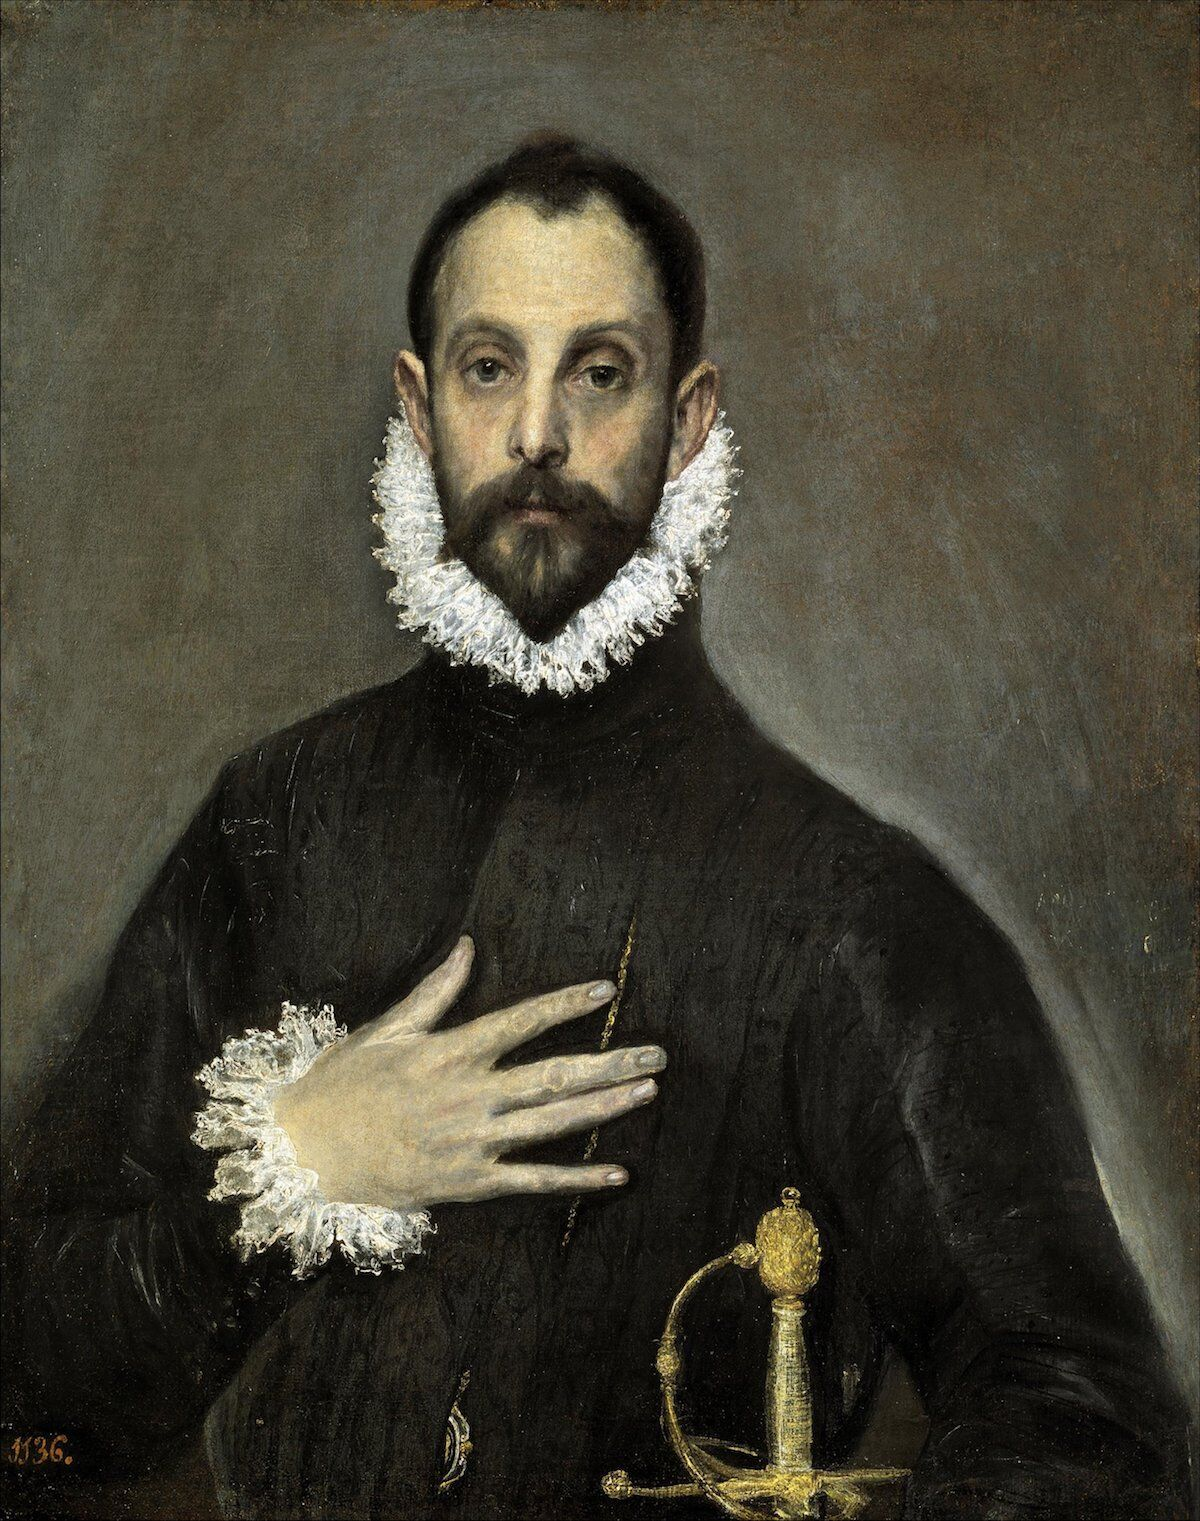 El Greco, The Nobleman with his Hand on his Chest, c. 1580. Museo Nacional del Prado, via Wikimedia Commons.